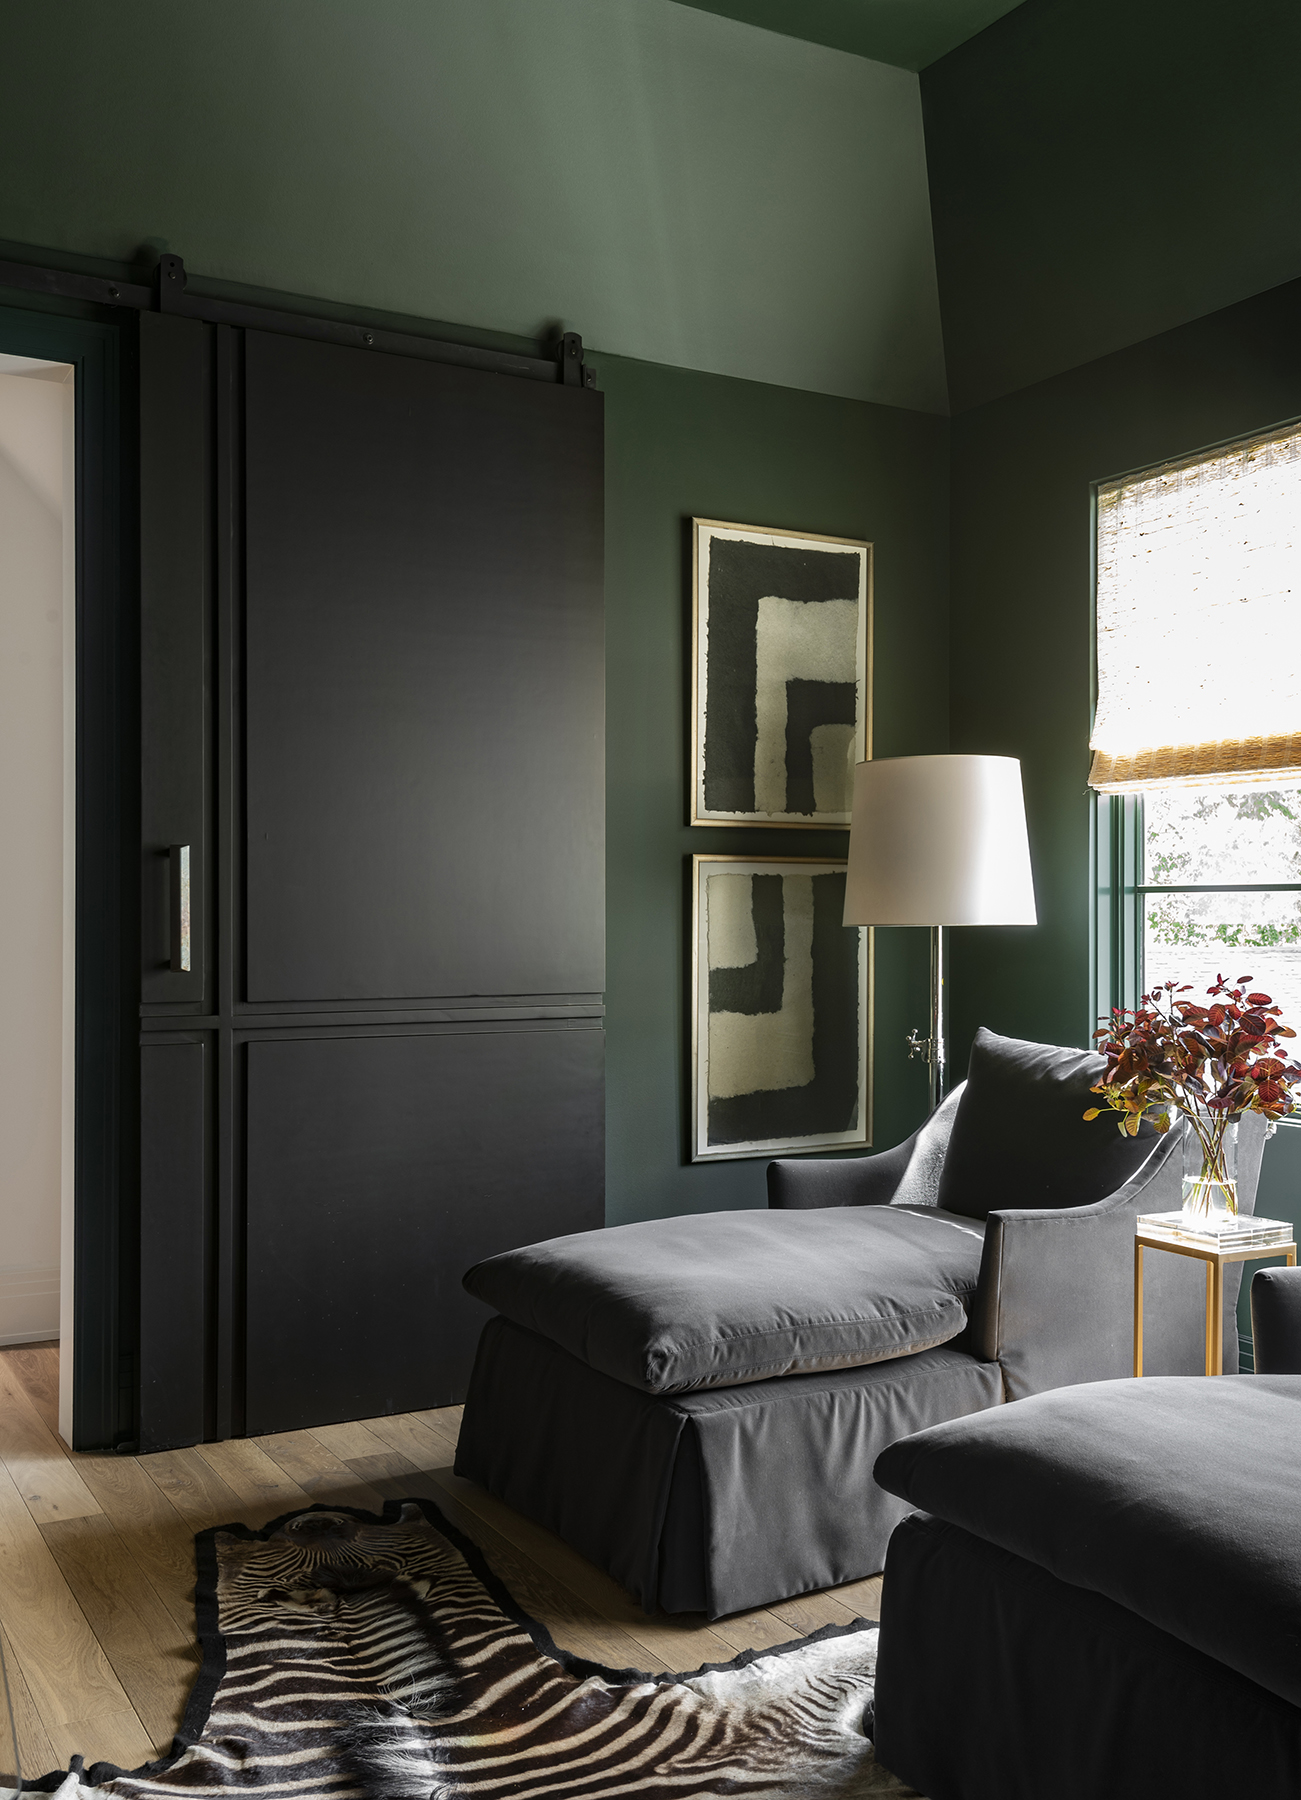 Forest green walls and black sliding doors to bedroom